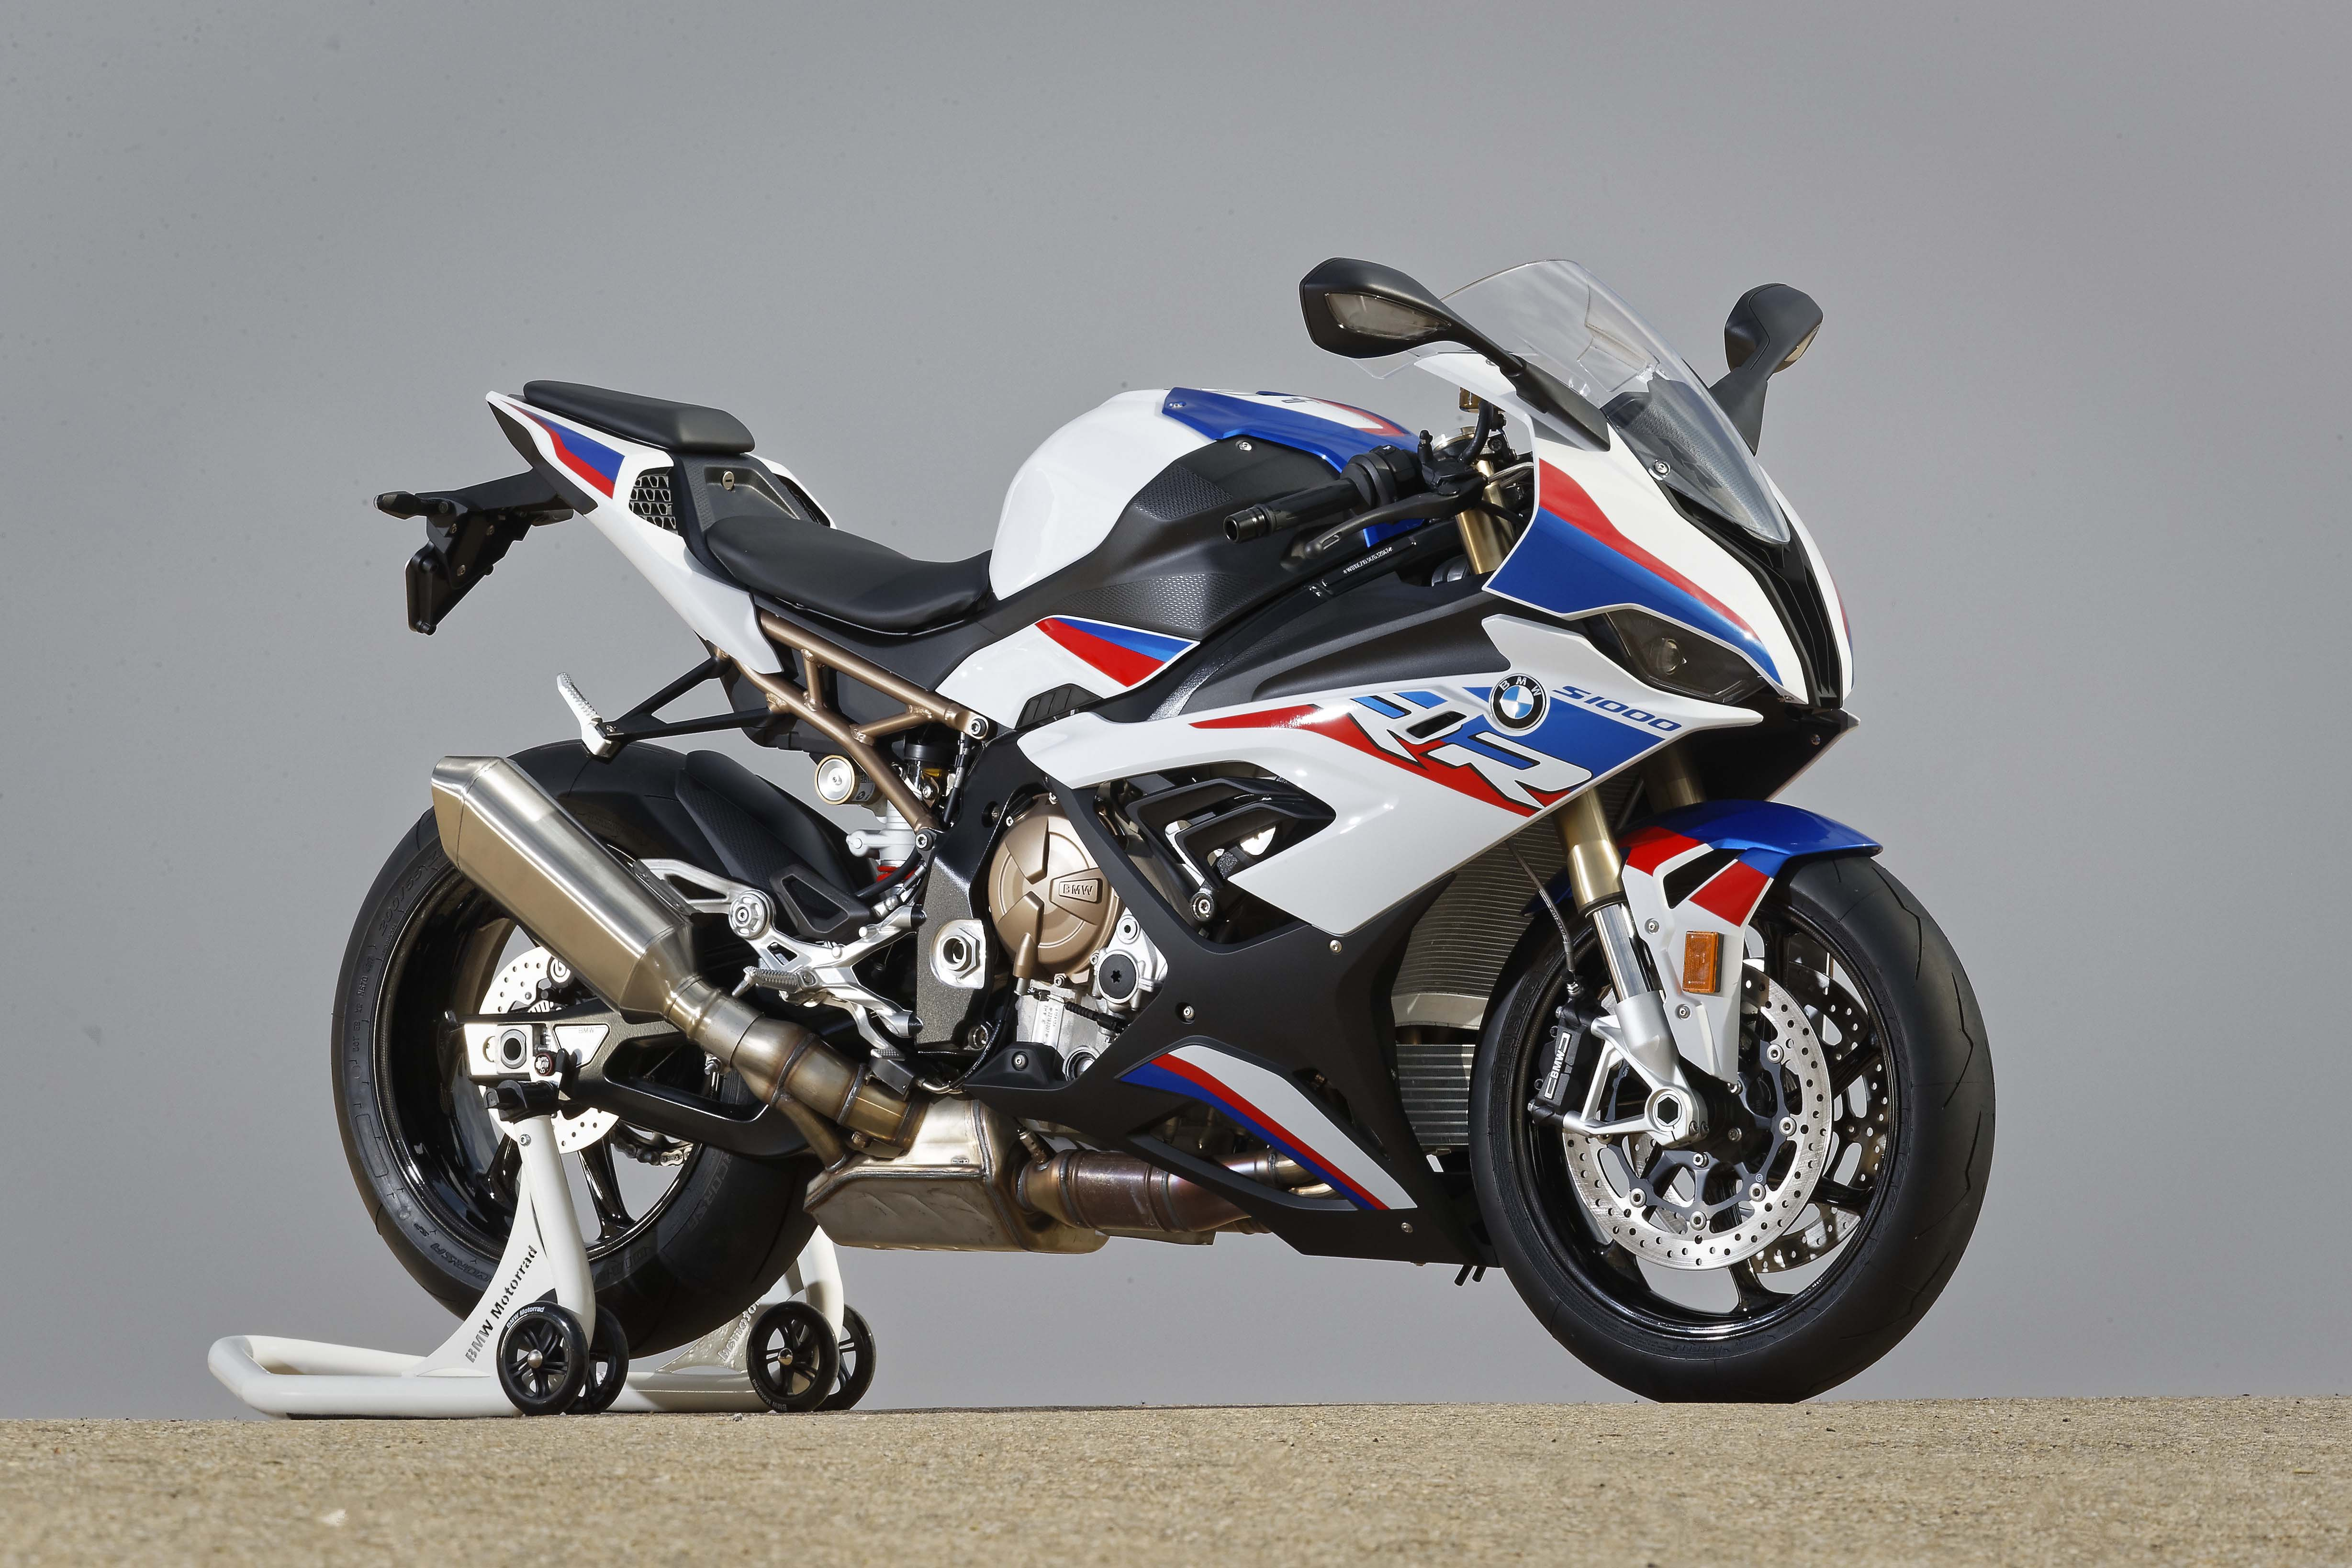 2020 bmw s1000rr recalled for oil leaks